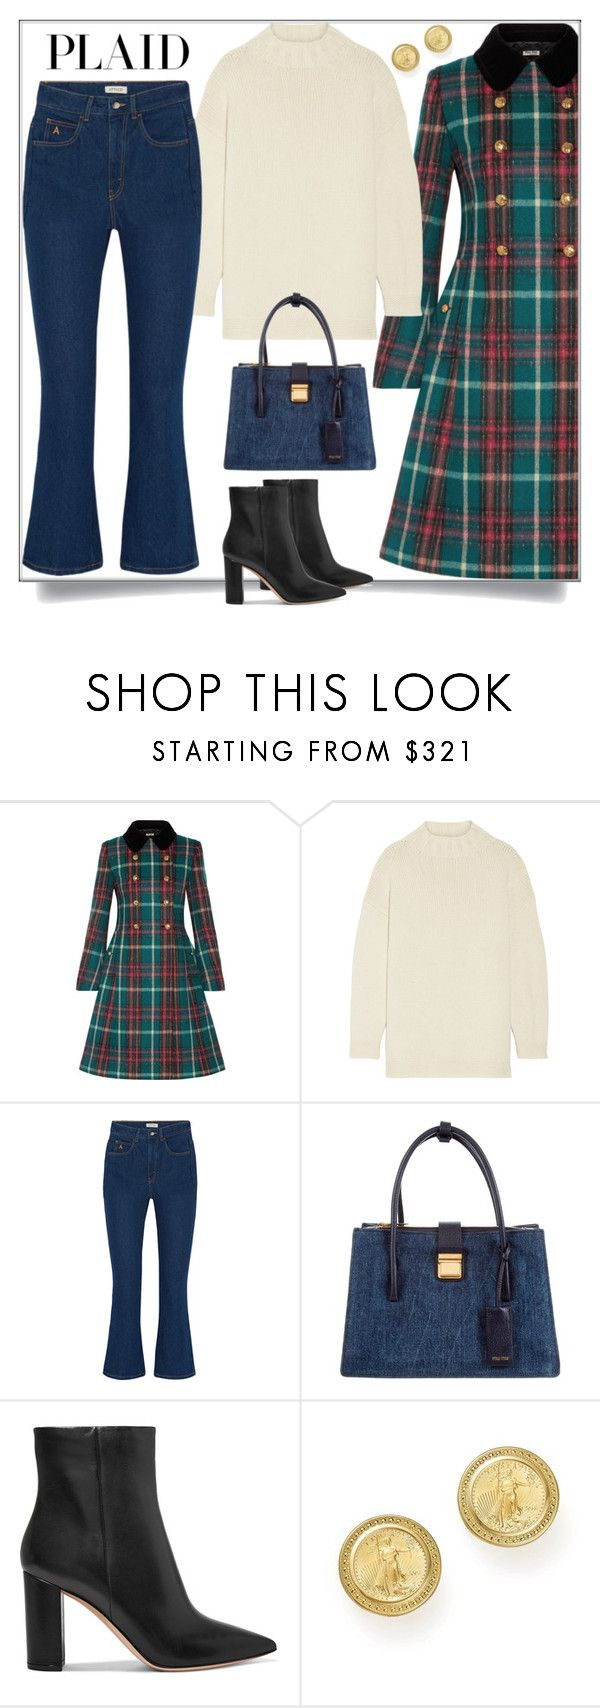 """""""Check It: Plaid"""" by shoaleh-nia ❤ liked on Polyvore featuring Miu Miu, Alexander McQueen, Attico, Gianvito Rossi and Bloomingdale's"""